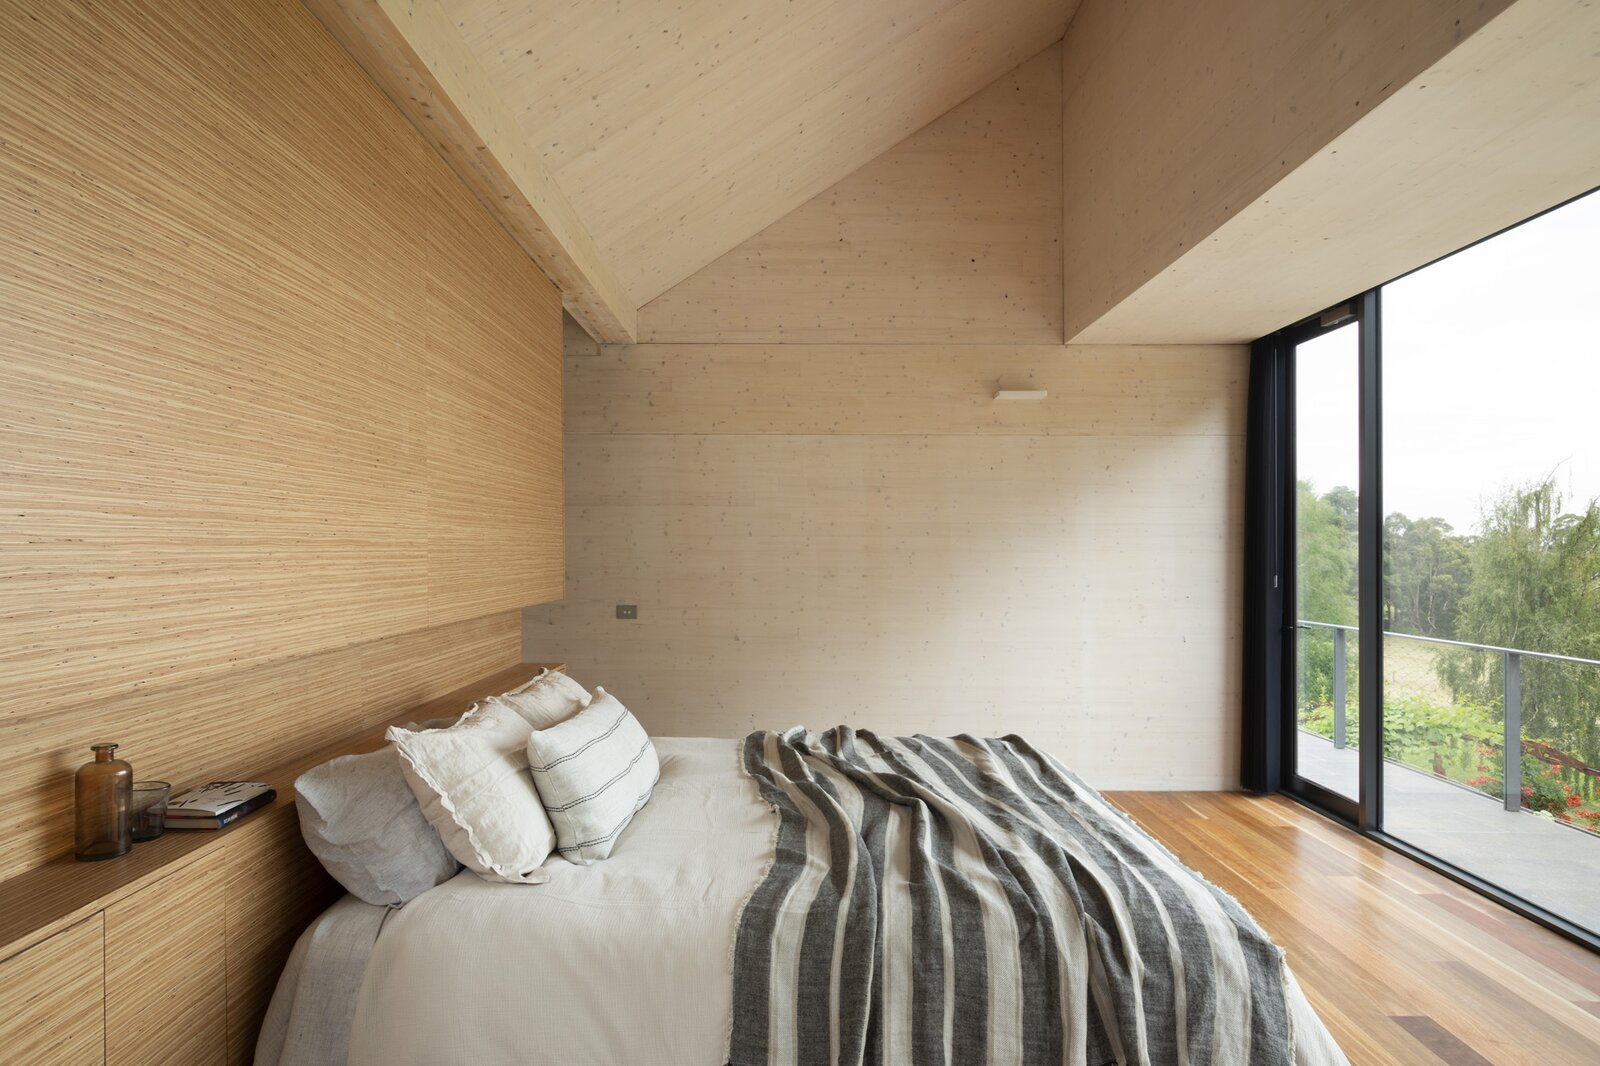 Bedroom, Bed, Storage, Ceiling Lighting, and Medium Hardwood Floor The simple interiors complement the usage of CLT throughout.  Photo 4 of 7 in Cross-Laminated Timber Gives This Renovated 1970s Australian Farmhouse a Bold Look